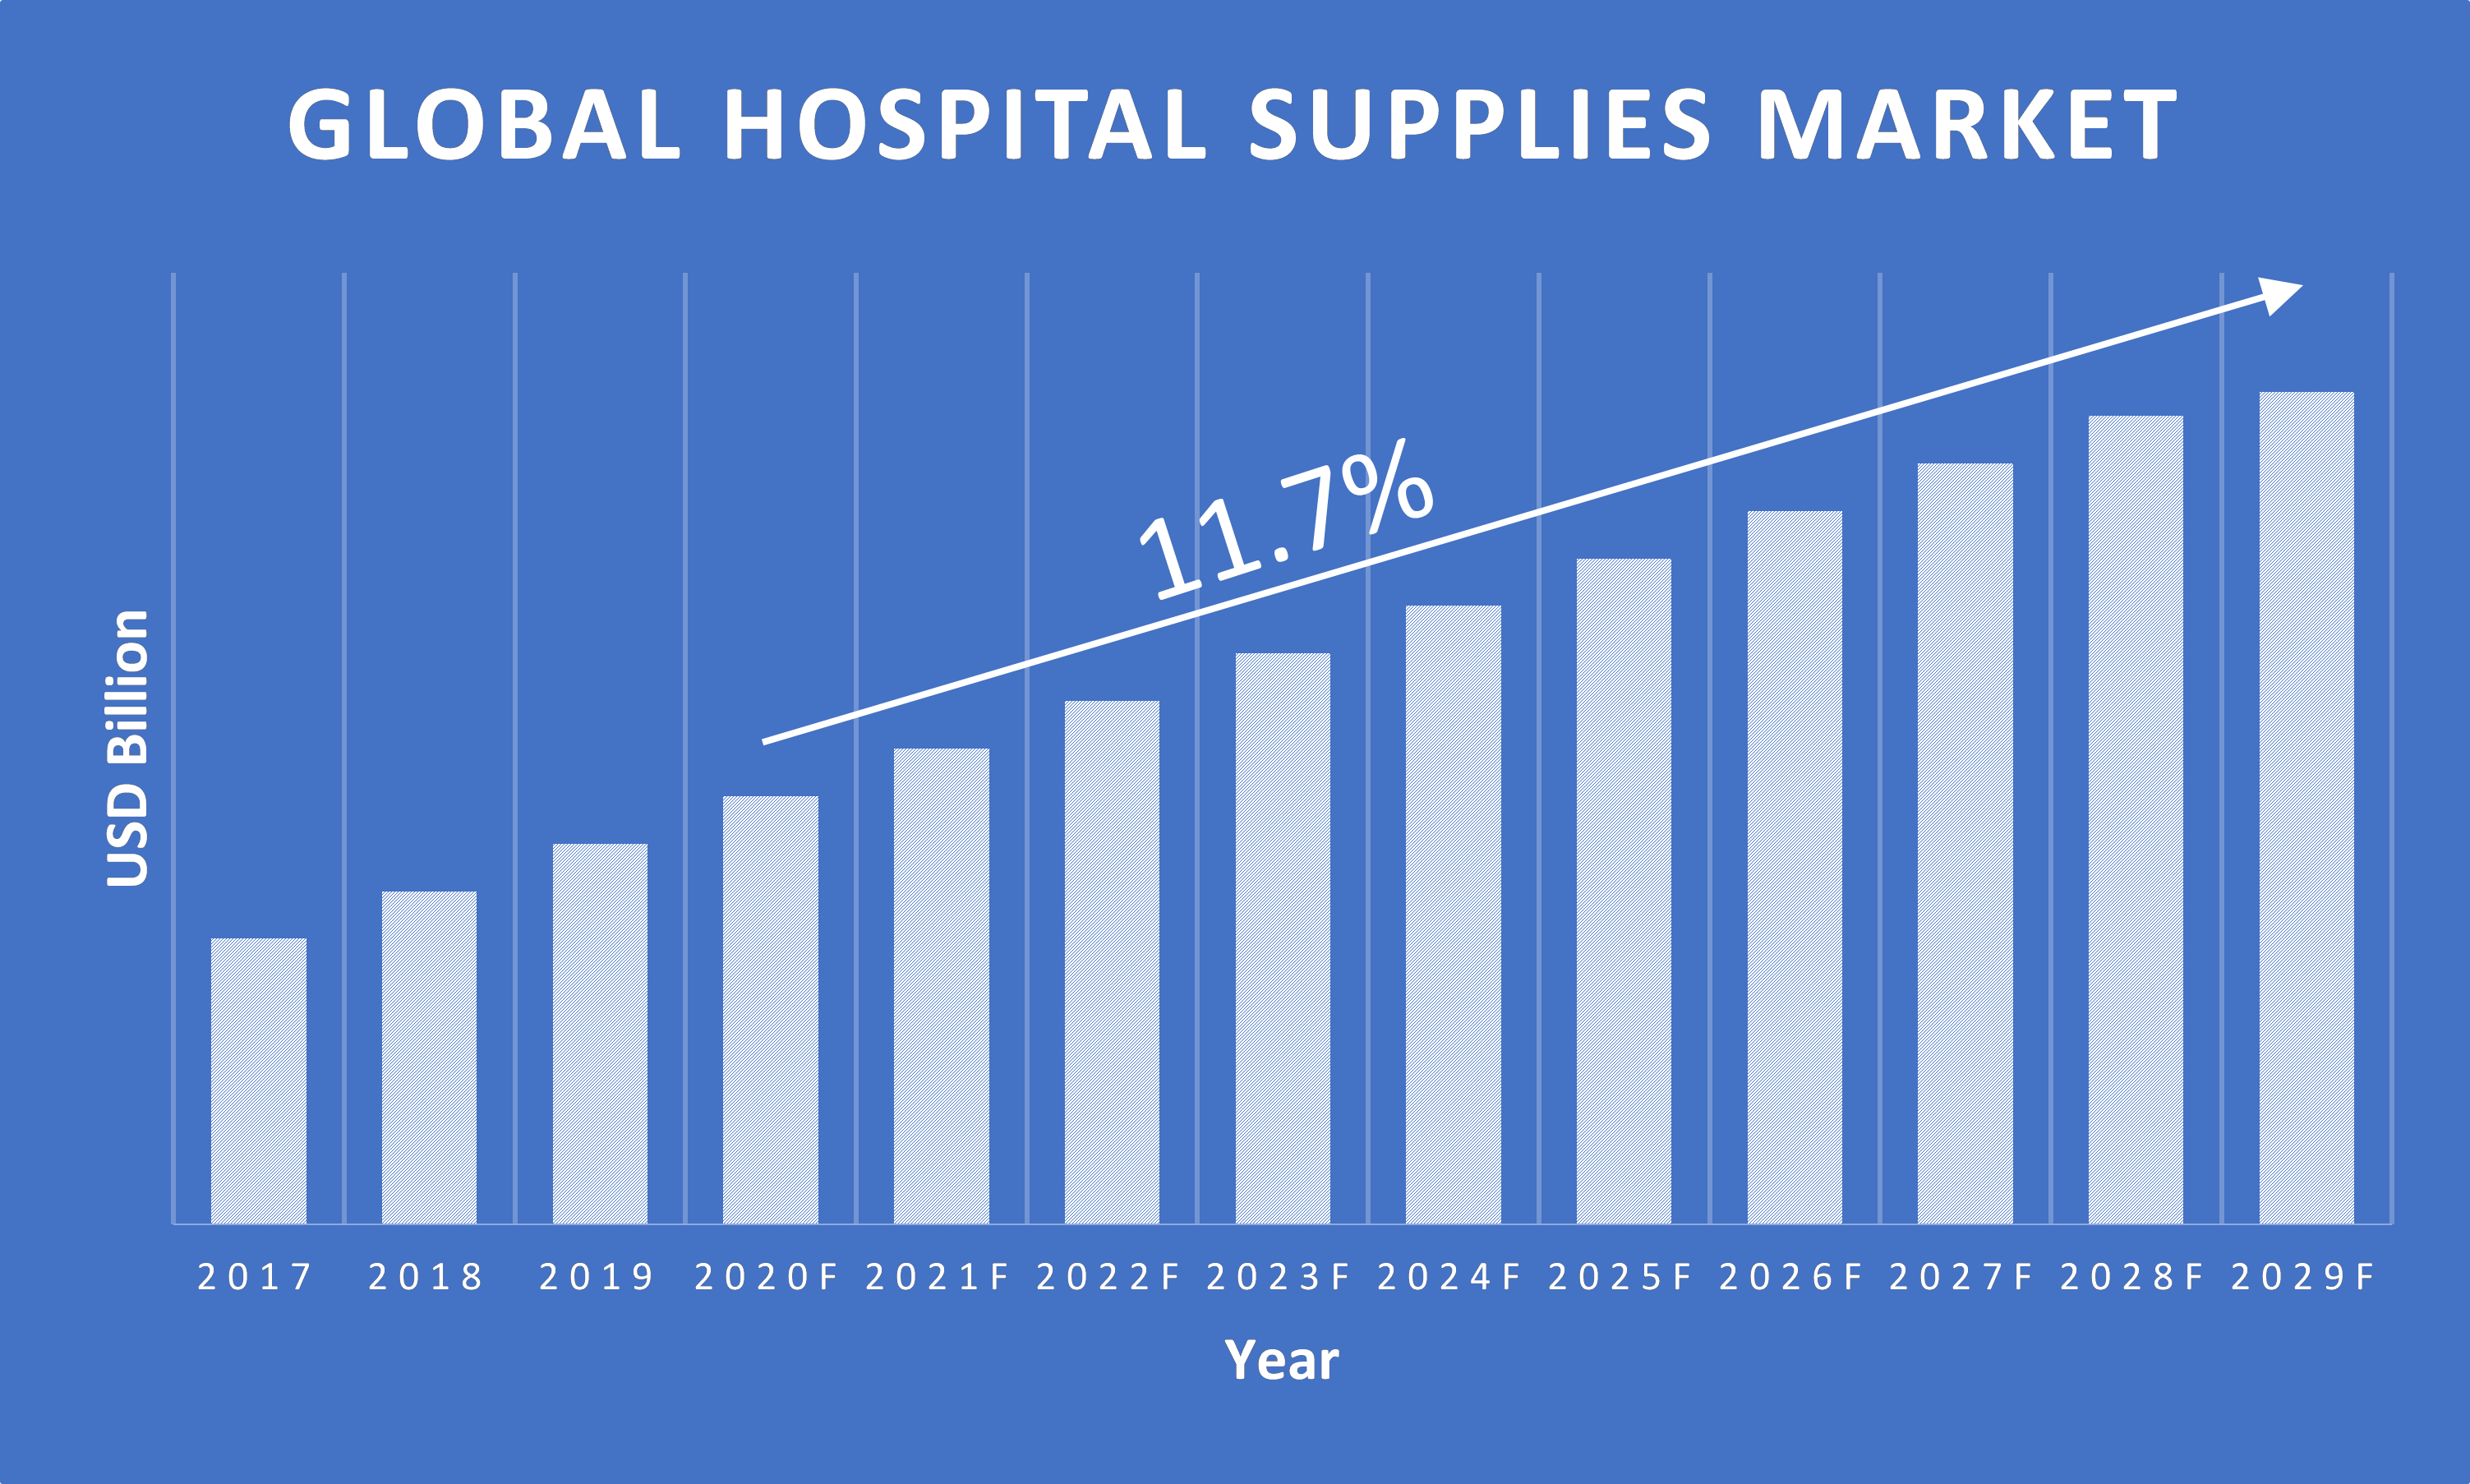 Hospital-Supplies-Market-Growth